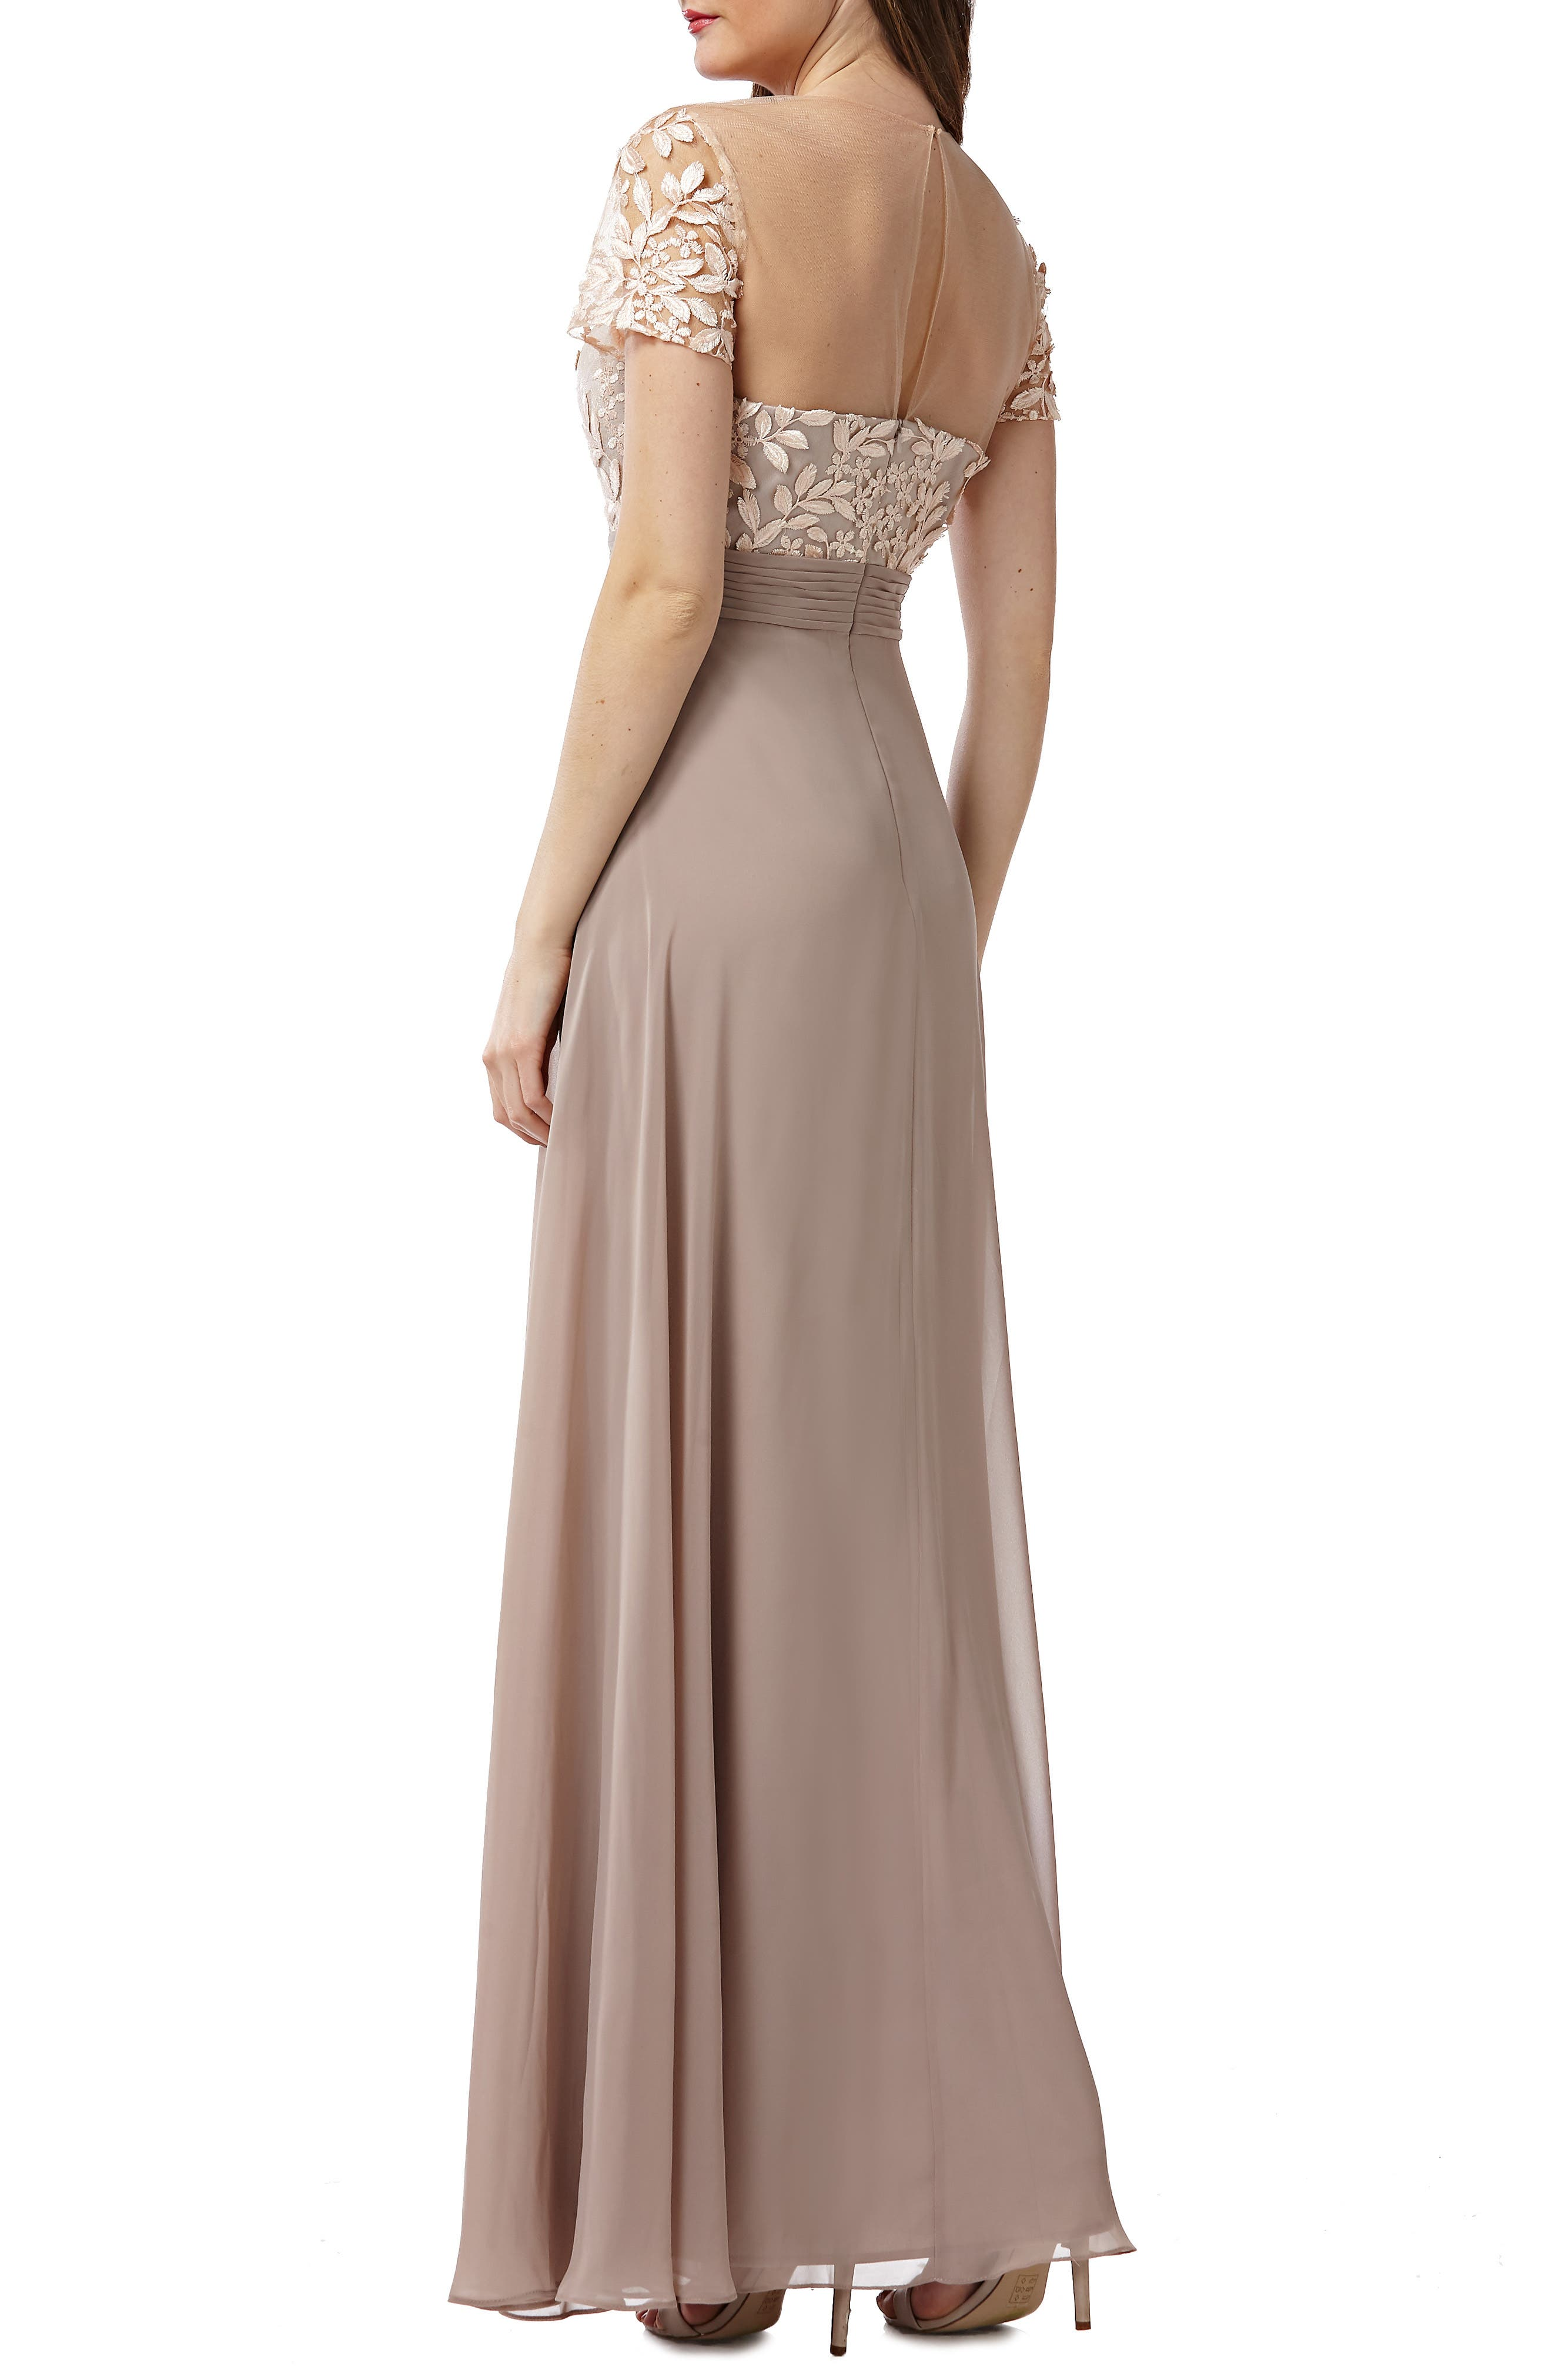 Embroidered Illusion Bodice Gown,                             Alternate thumbnail 2, color,                             BLUSH/ NUDE